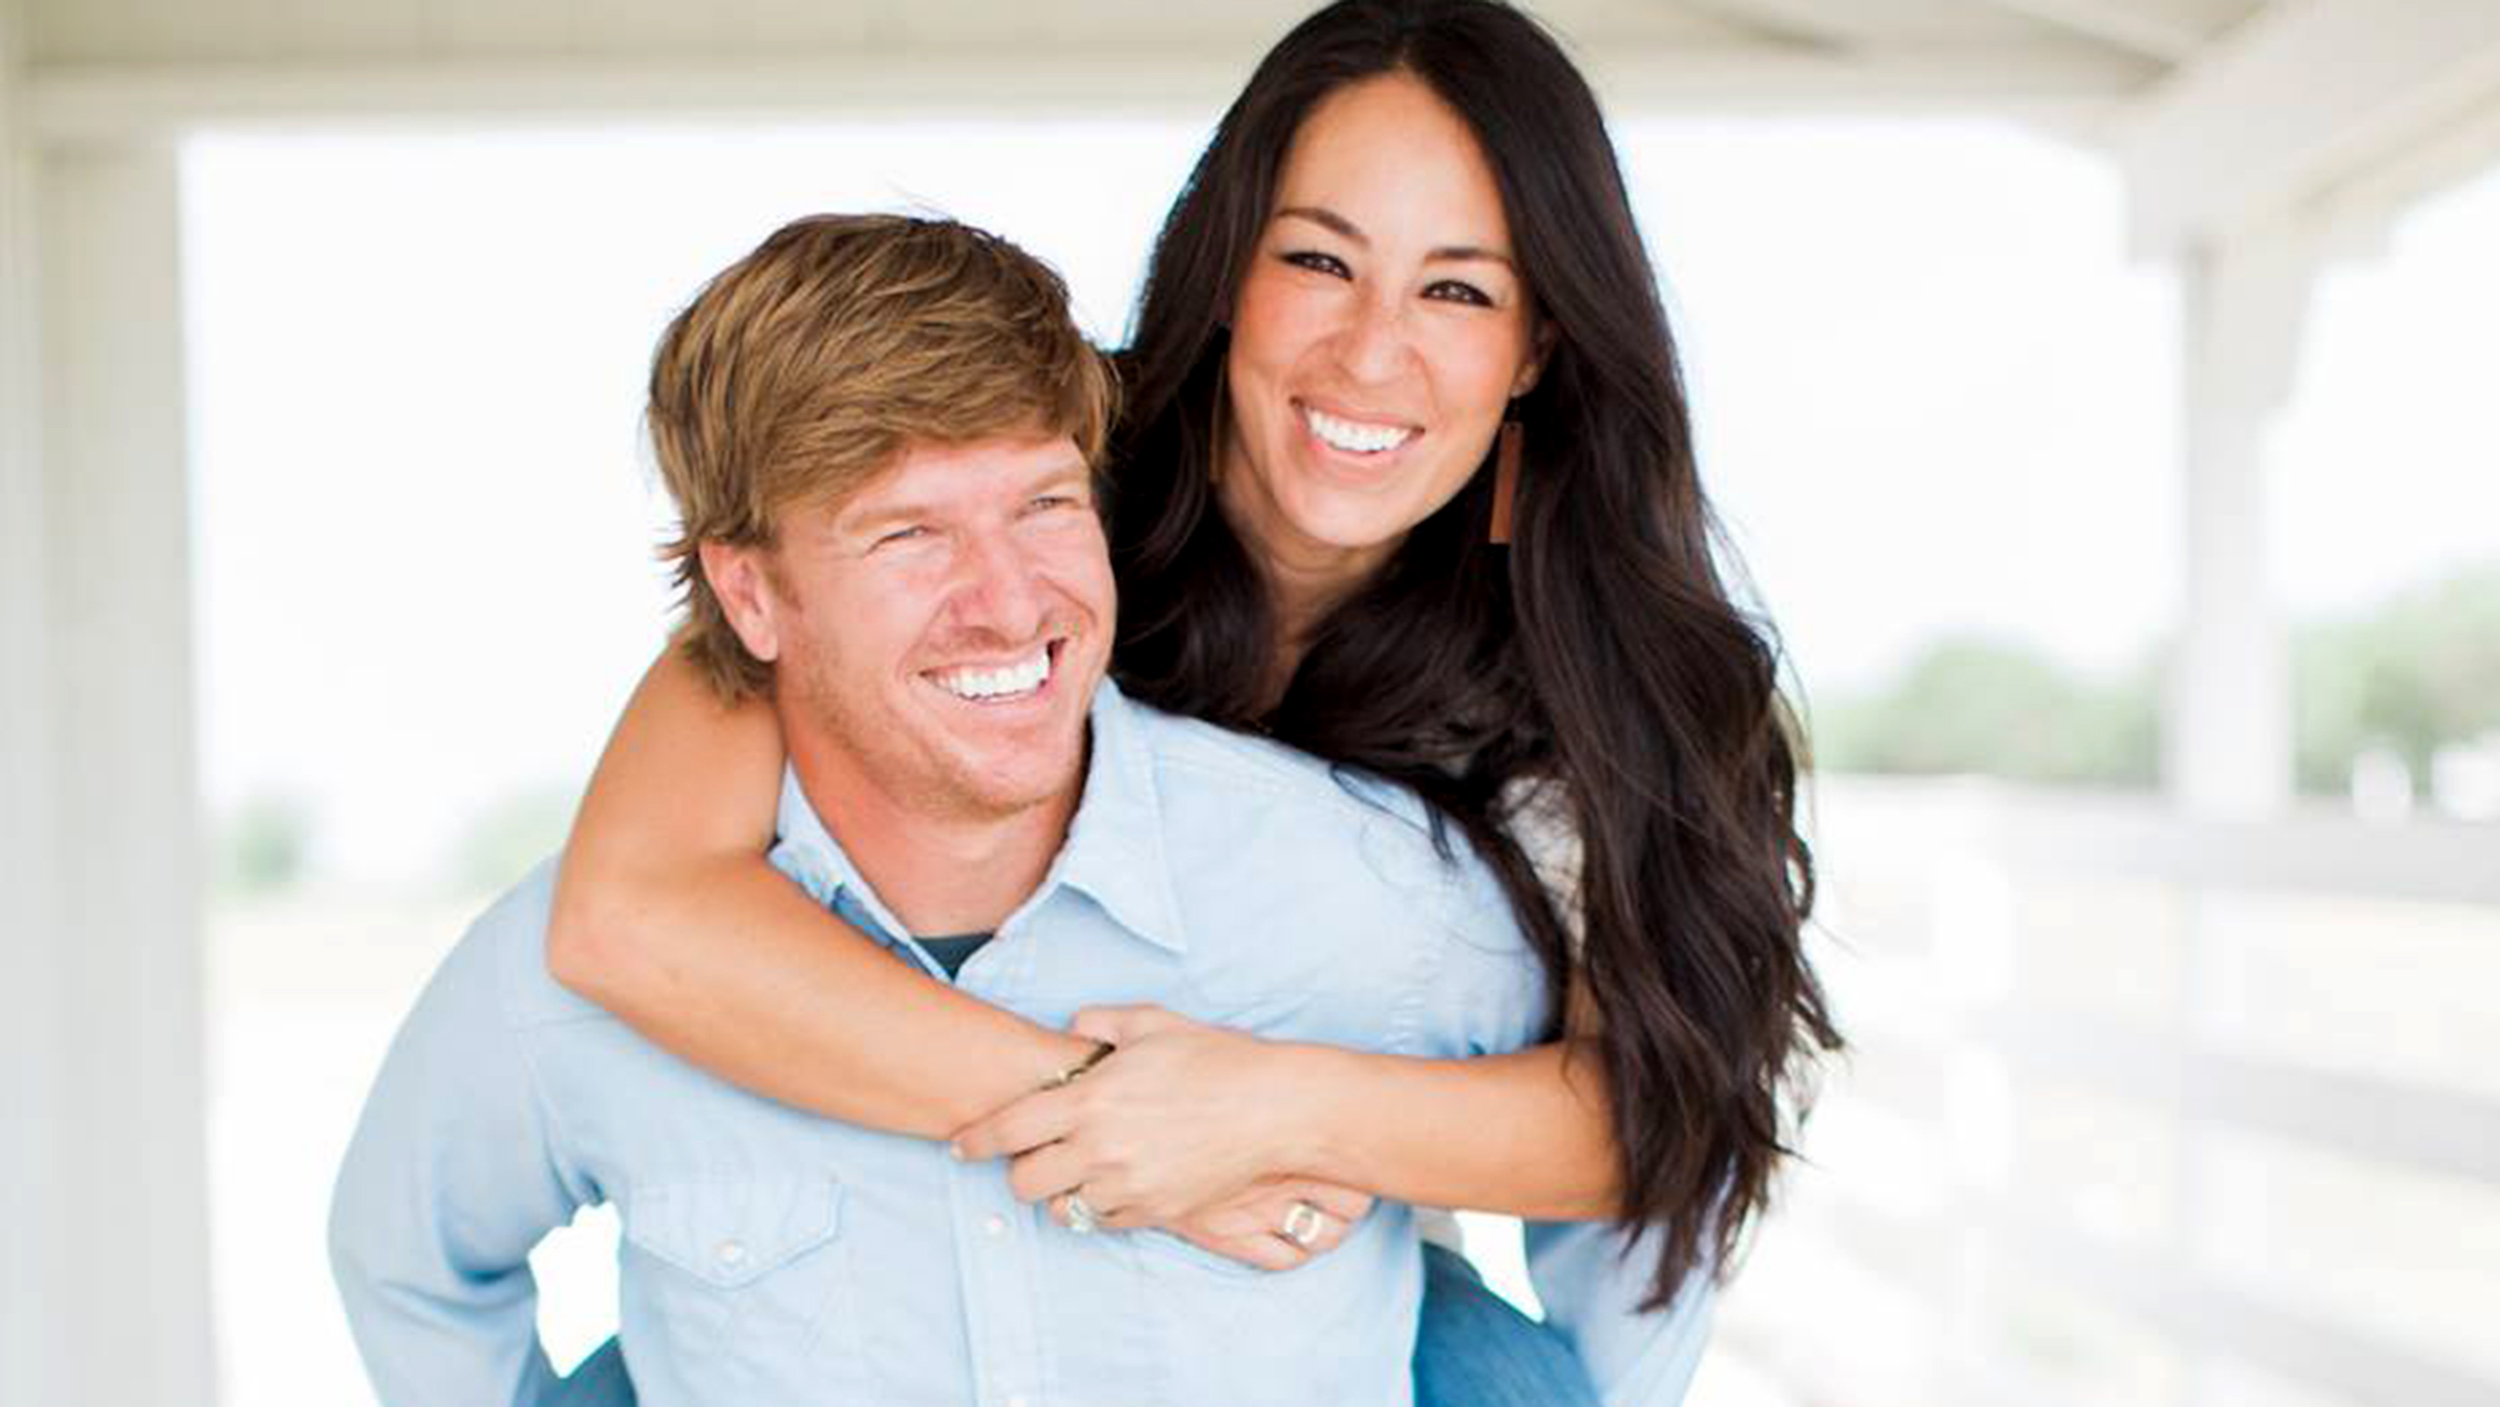 Chip and Joanna Gaines are launching a lifestyle magazine